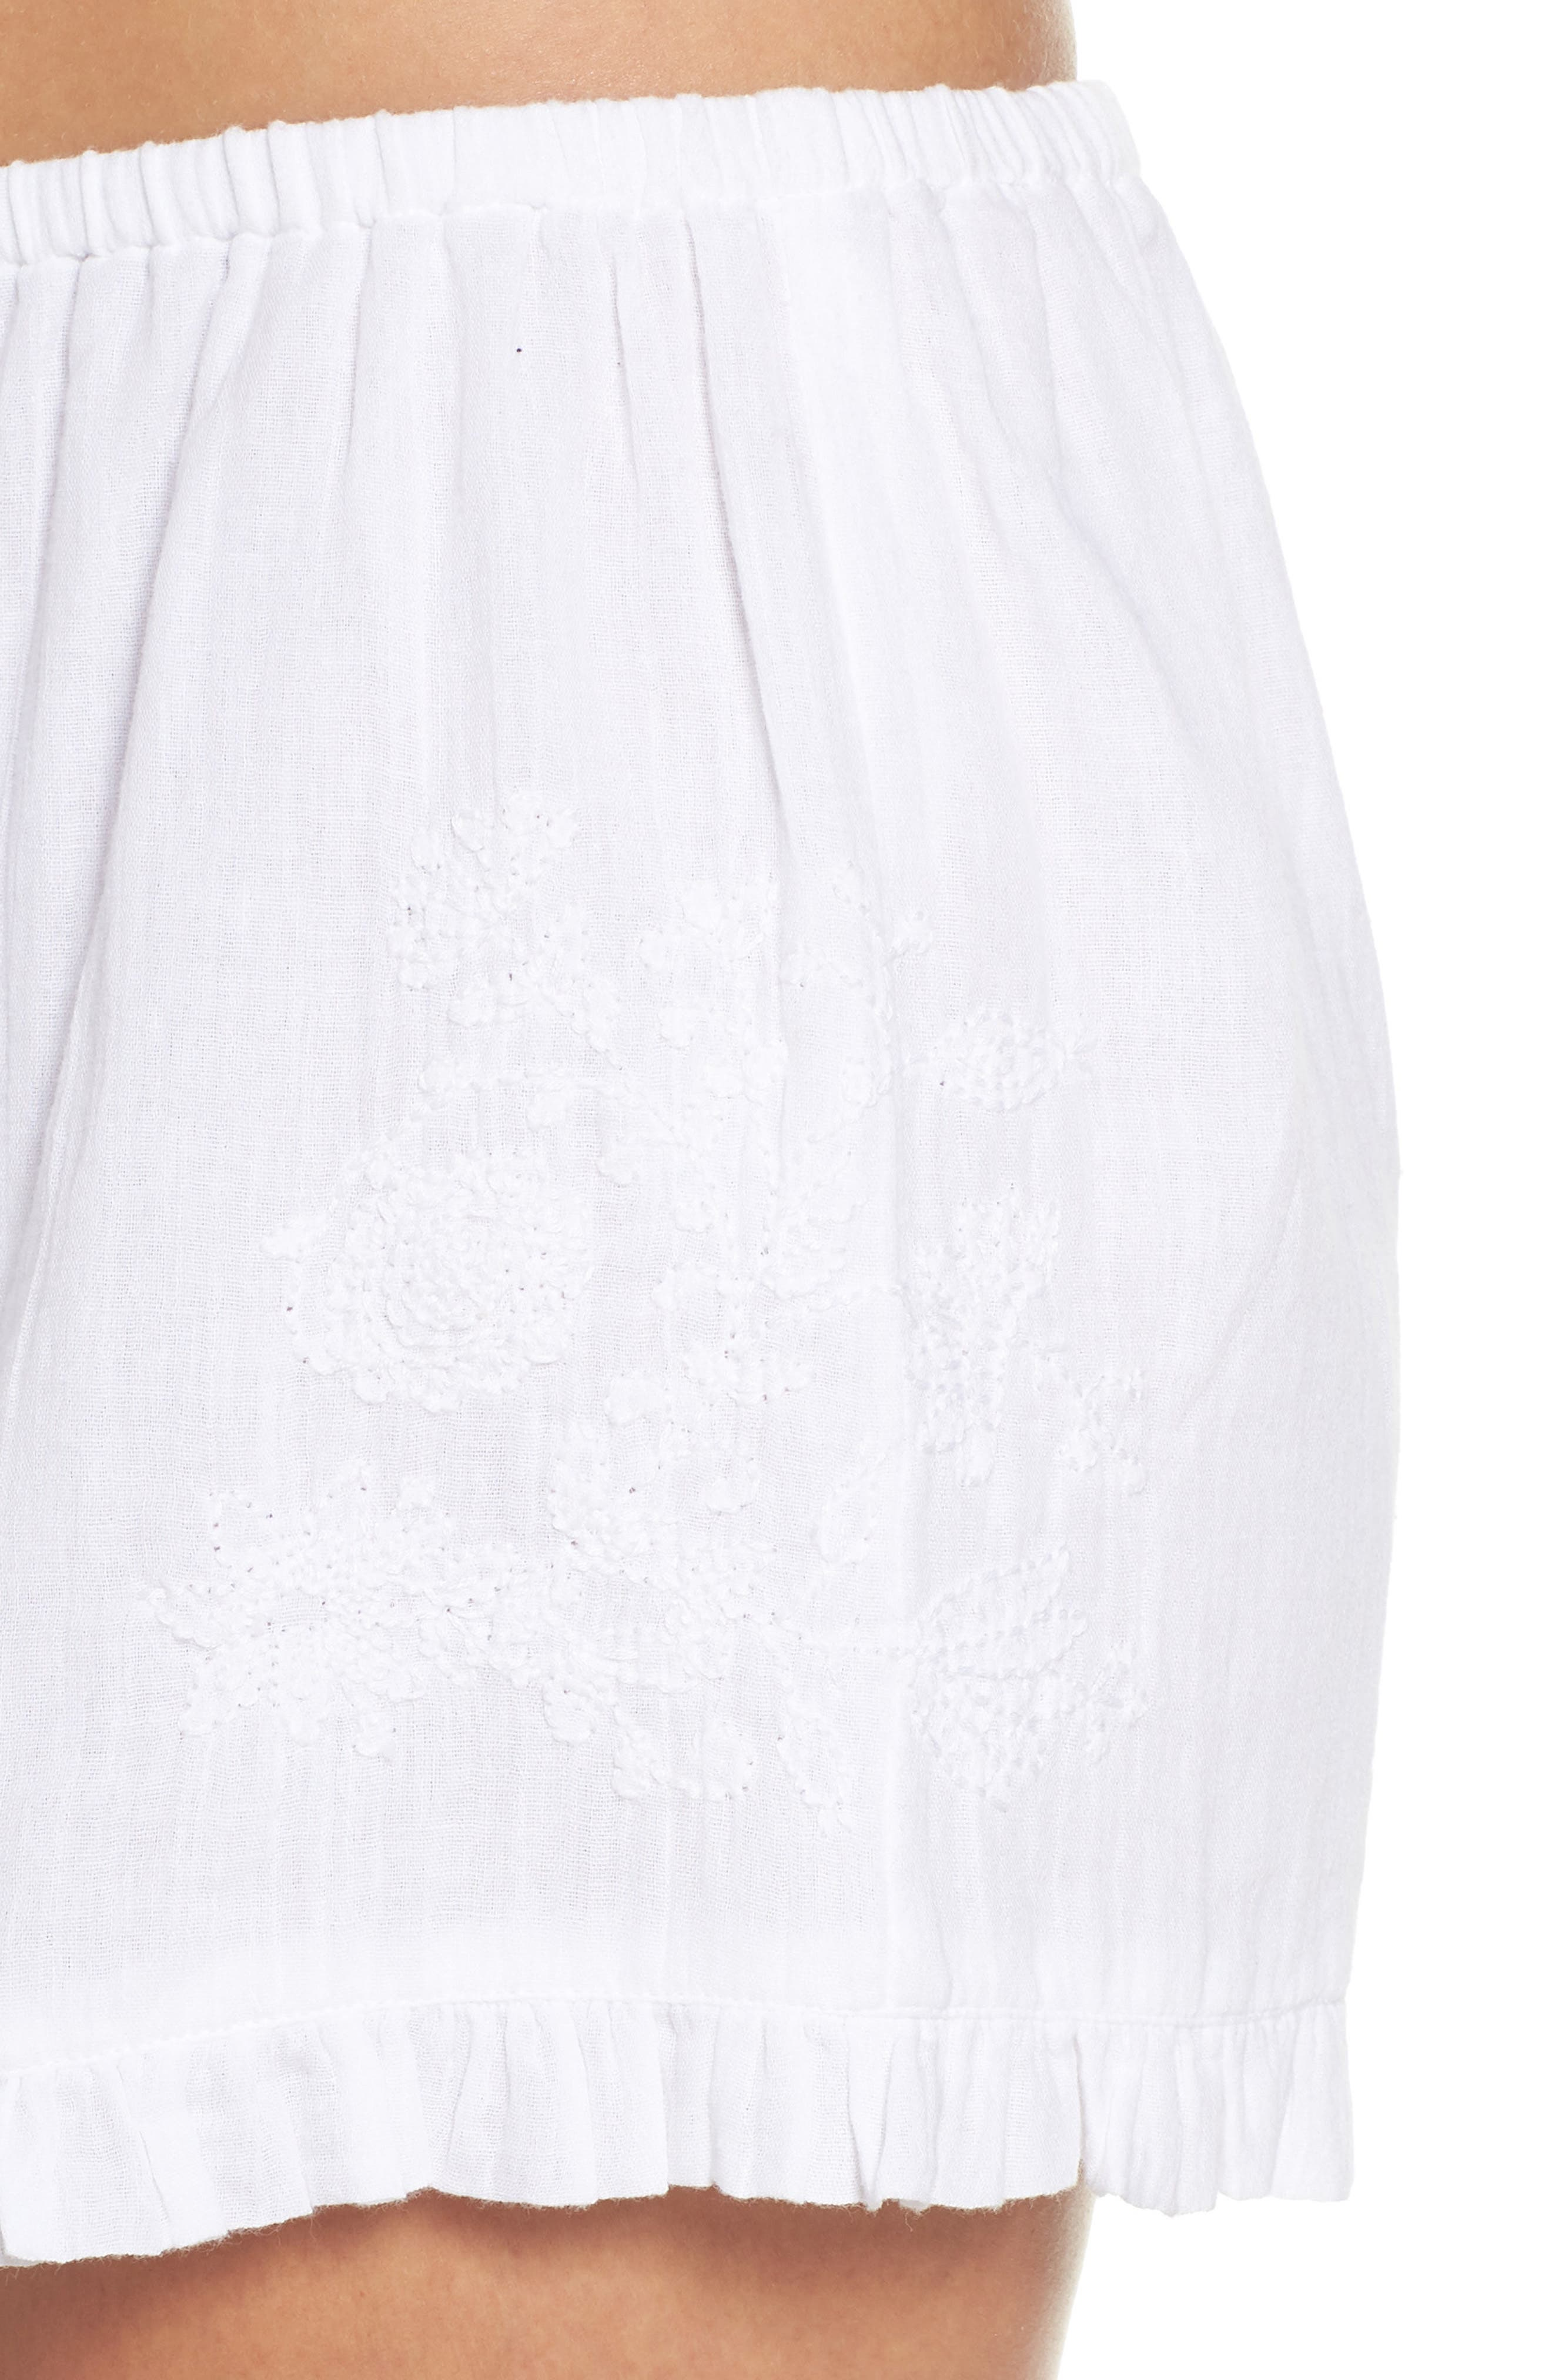 Cambria Ruffle Sleep Shorts,                             Alternate thumbnail 6, color,                             White